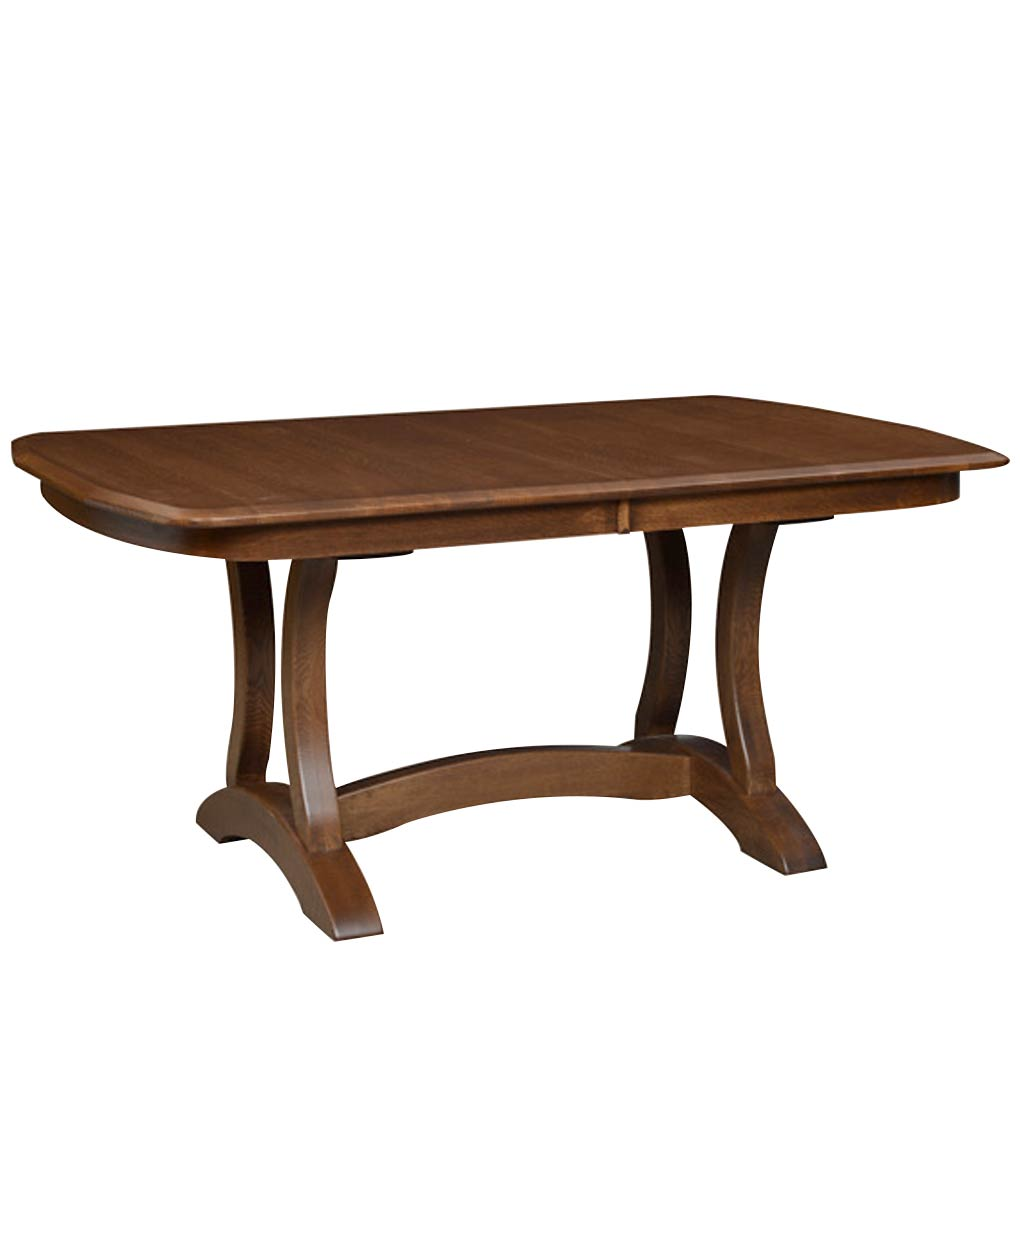 Richfield Amish Double Pedestal Table